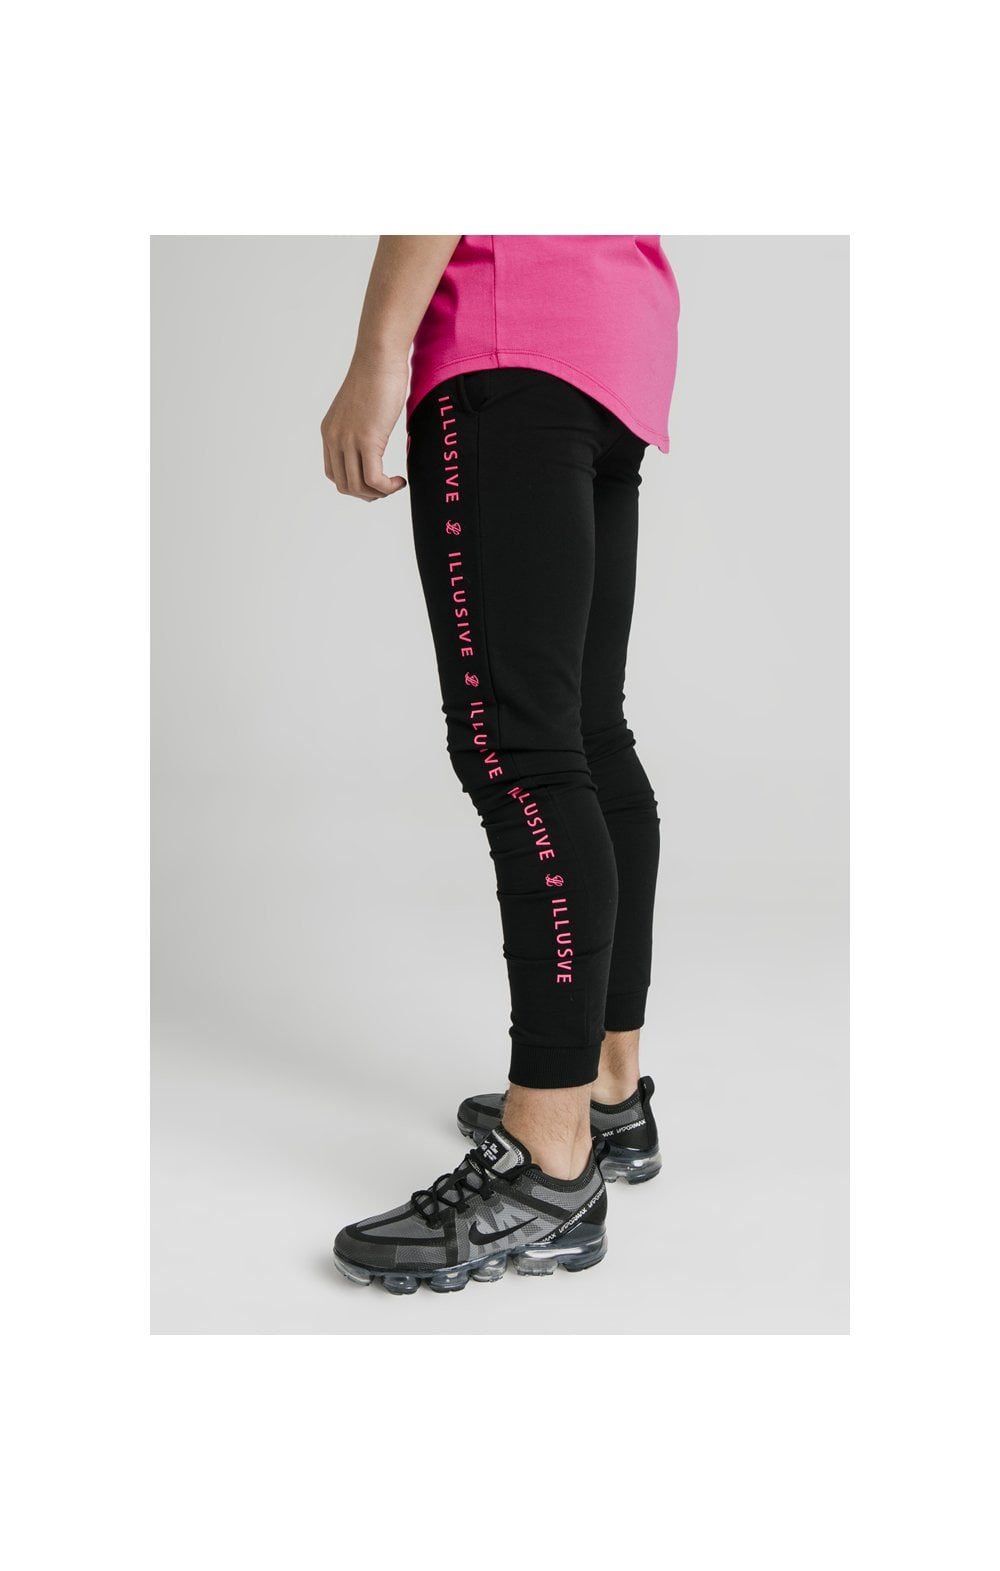 Illusive London Cuffed Joggers – Black & Pink (1)